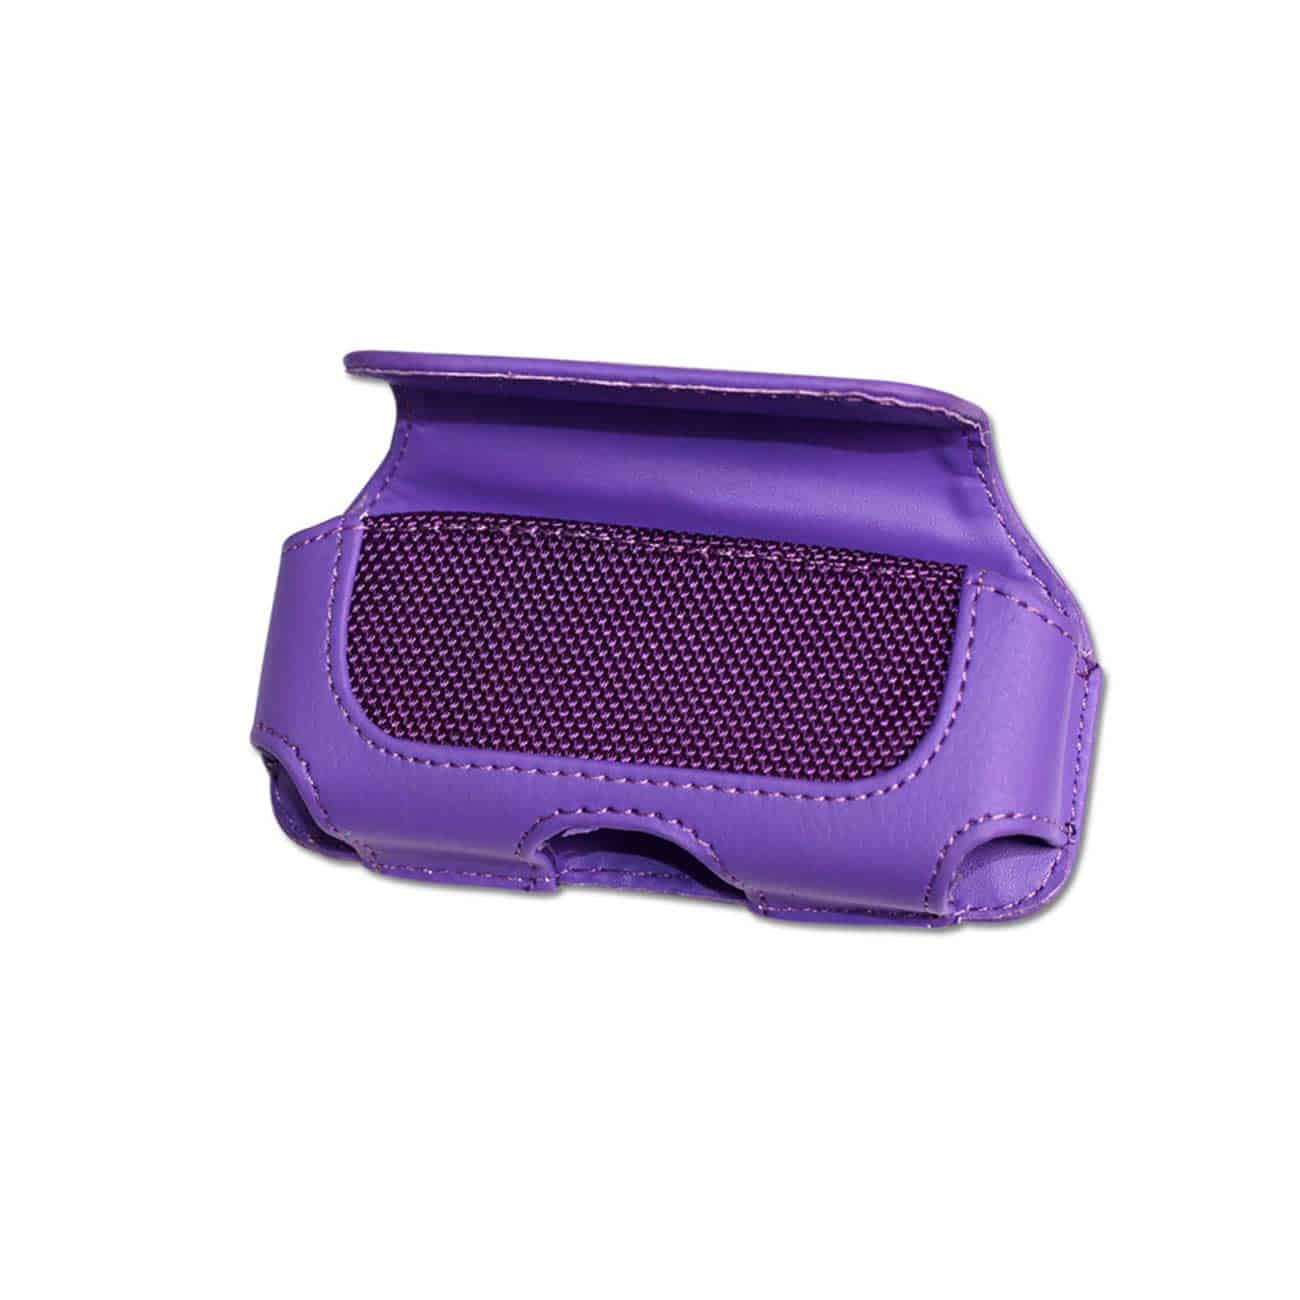 HORIZONTAL POUCH HP11A L SIZE PURPLE 4.6X1.9X0.8 INCHES